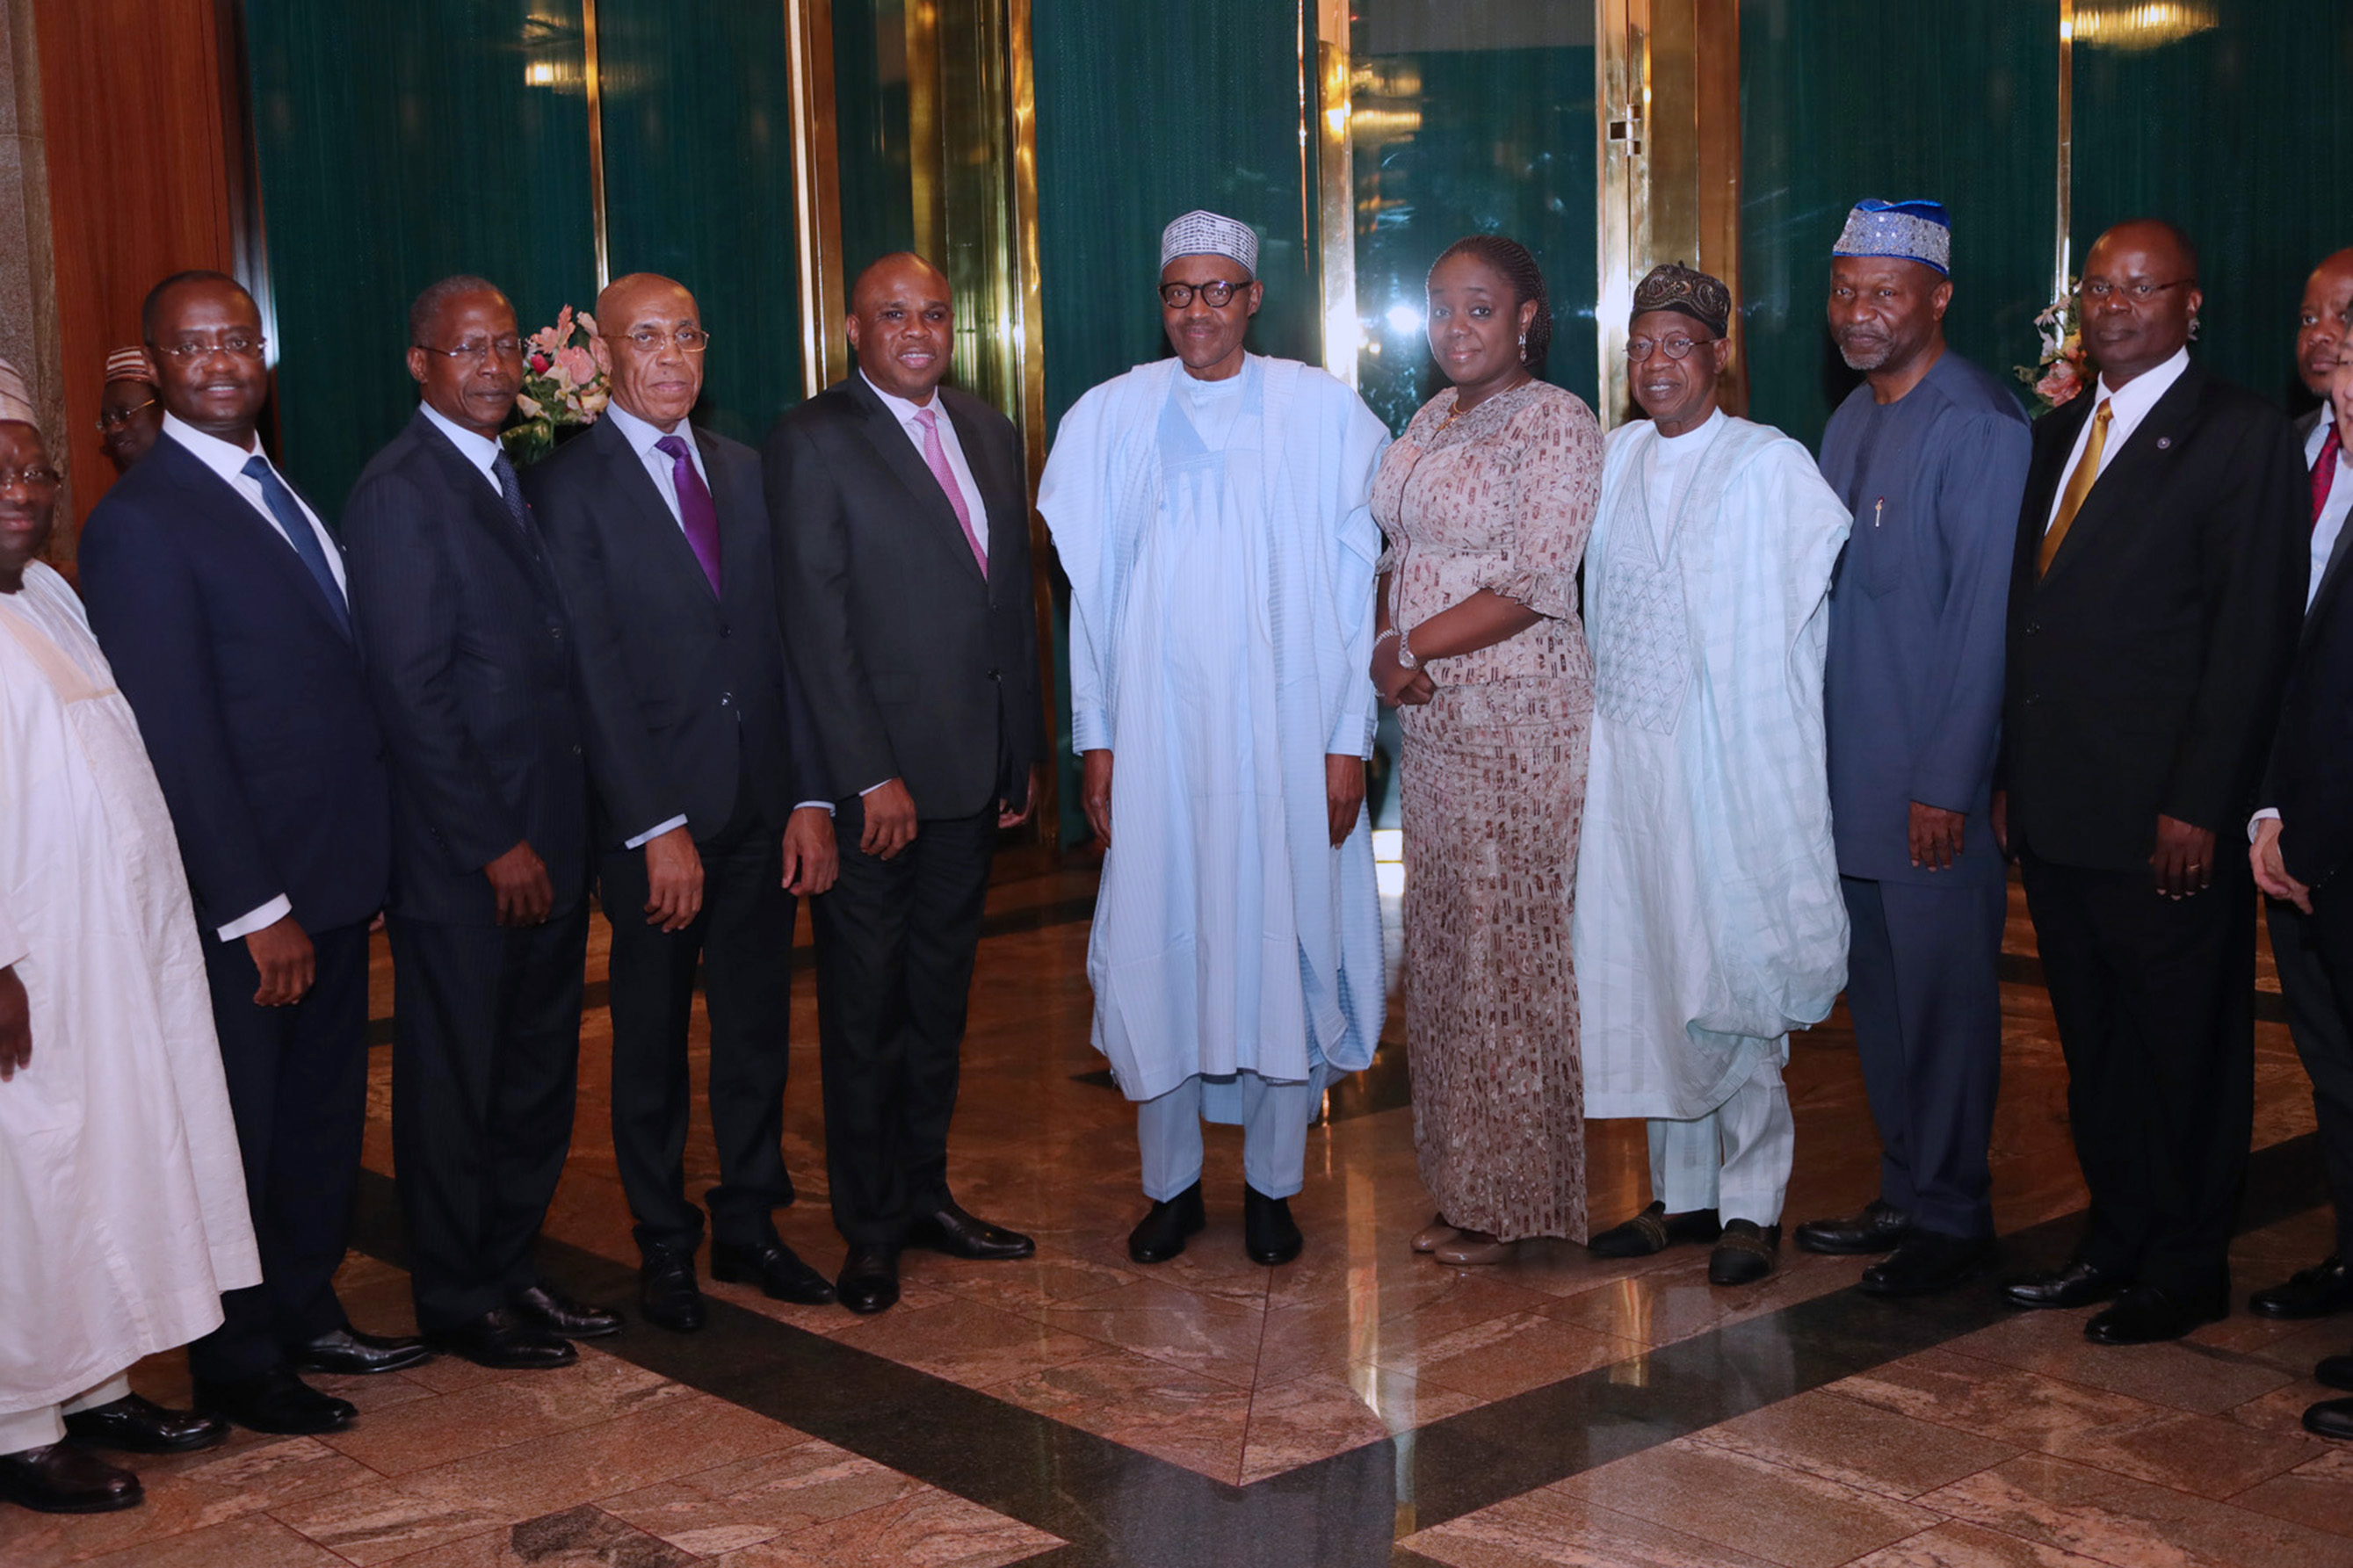 The Day in Pictures: Buhari meets Afreximbank board at the Villa